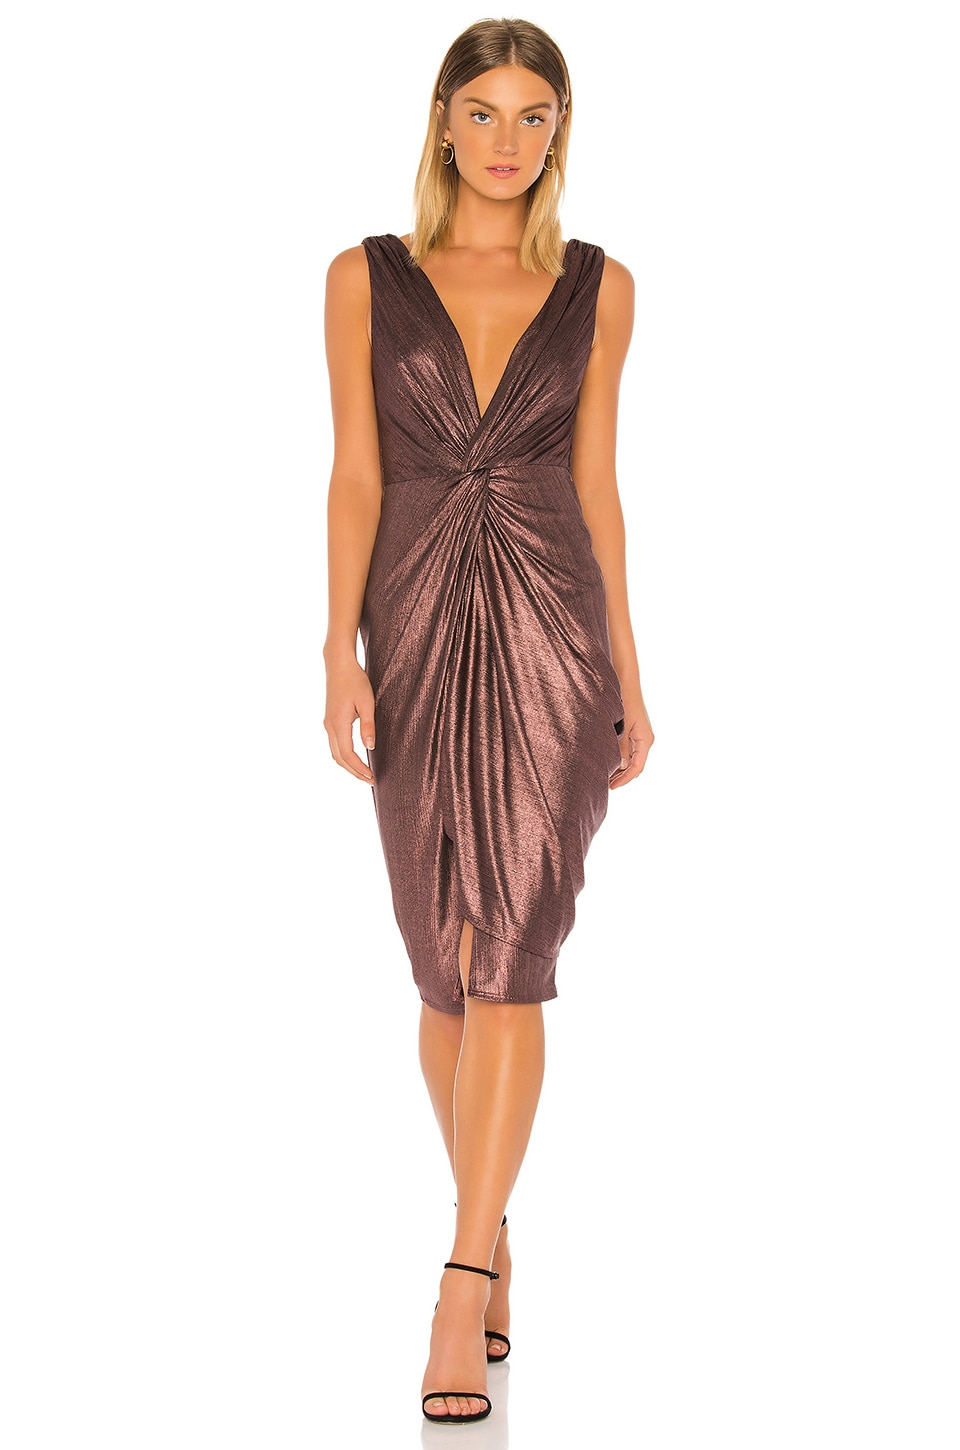 Katie May Sass Dress in Plum Metallic